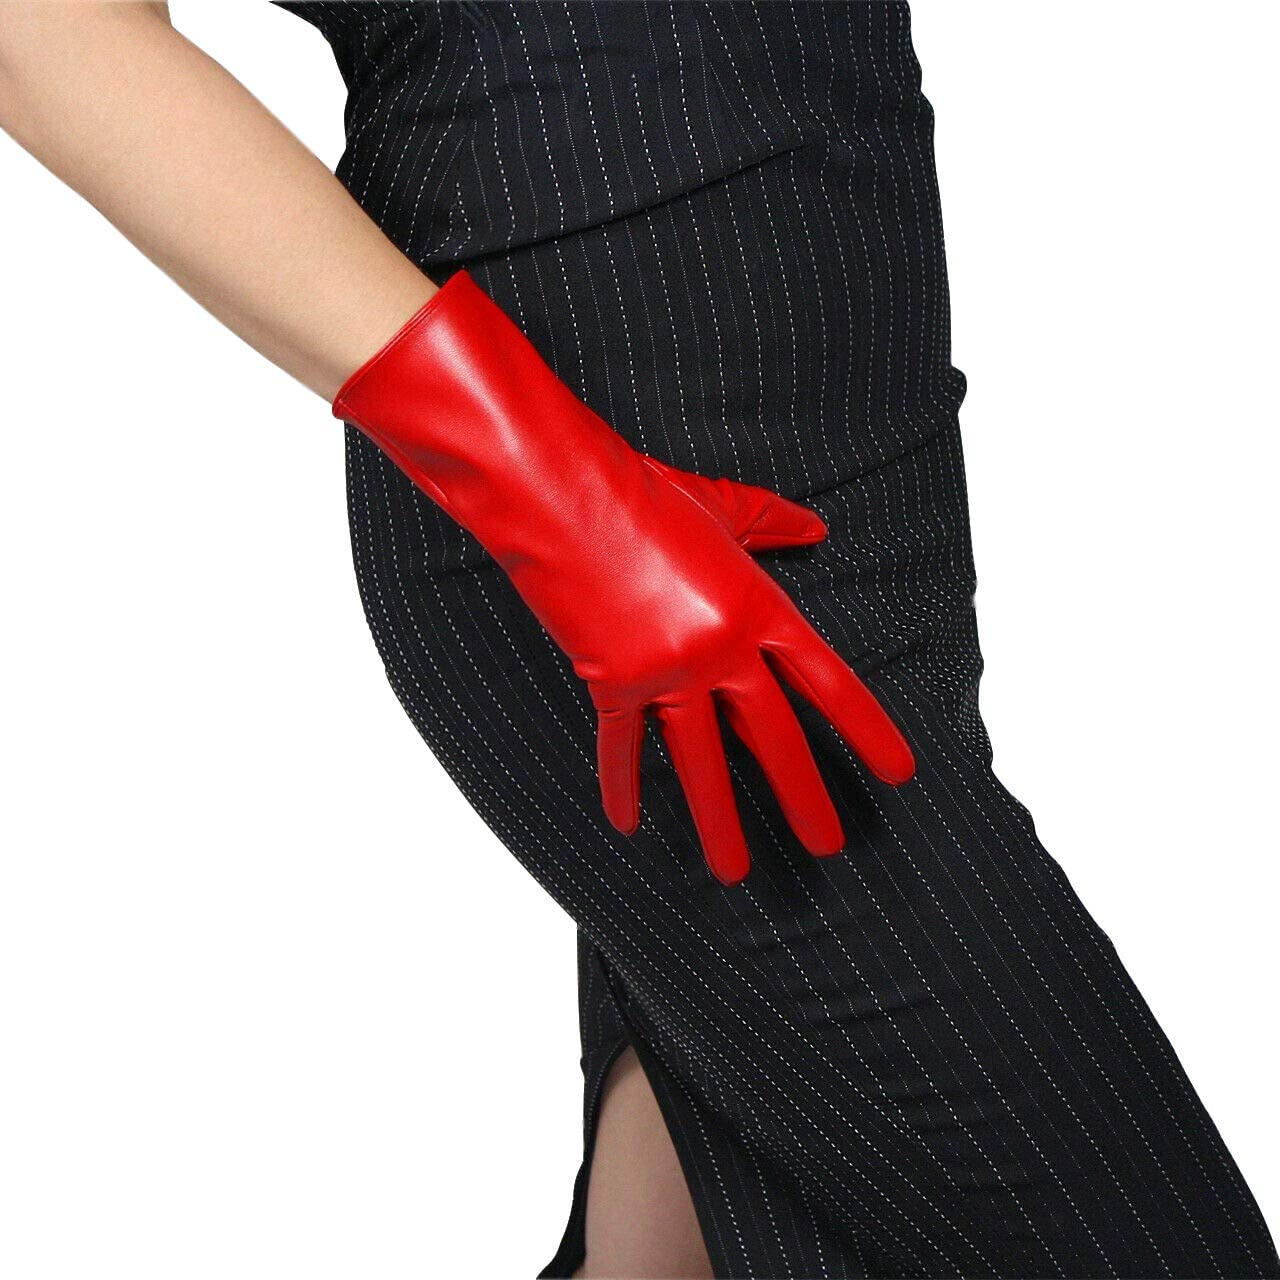 DooWay WOMEN LEATHER GLOVES Faux Lambskin Leather PU HOT Red Elbow Length Cosplay Costume Party Gloves